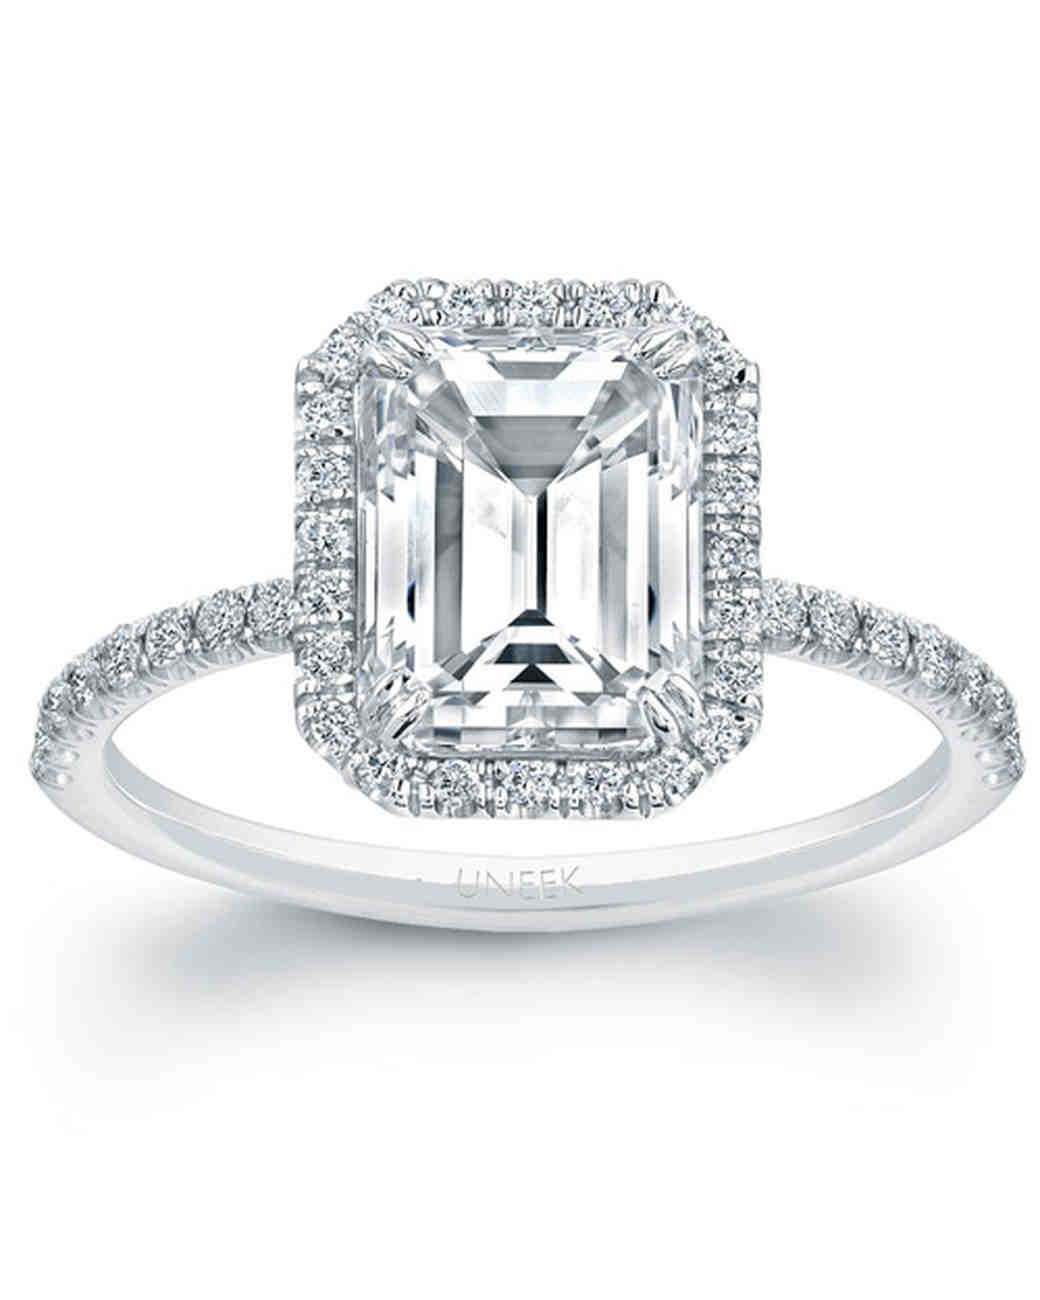 elegant emerald cut engagement rings martha stewart weddings - Emerald Cut Wedding Rings